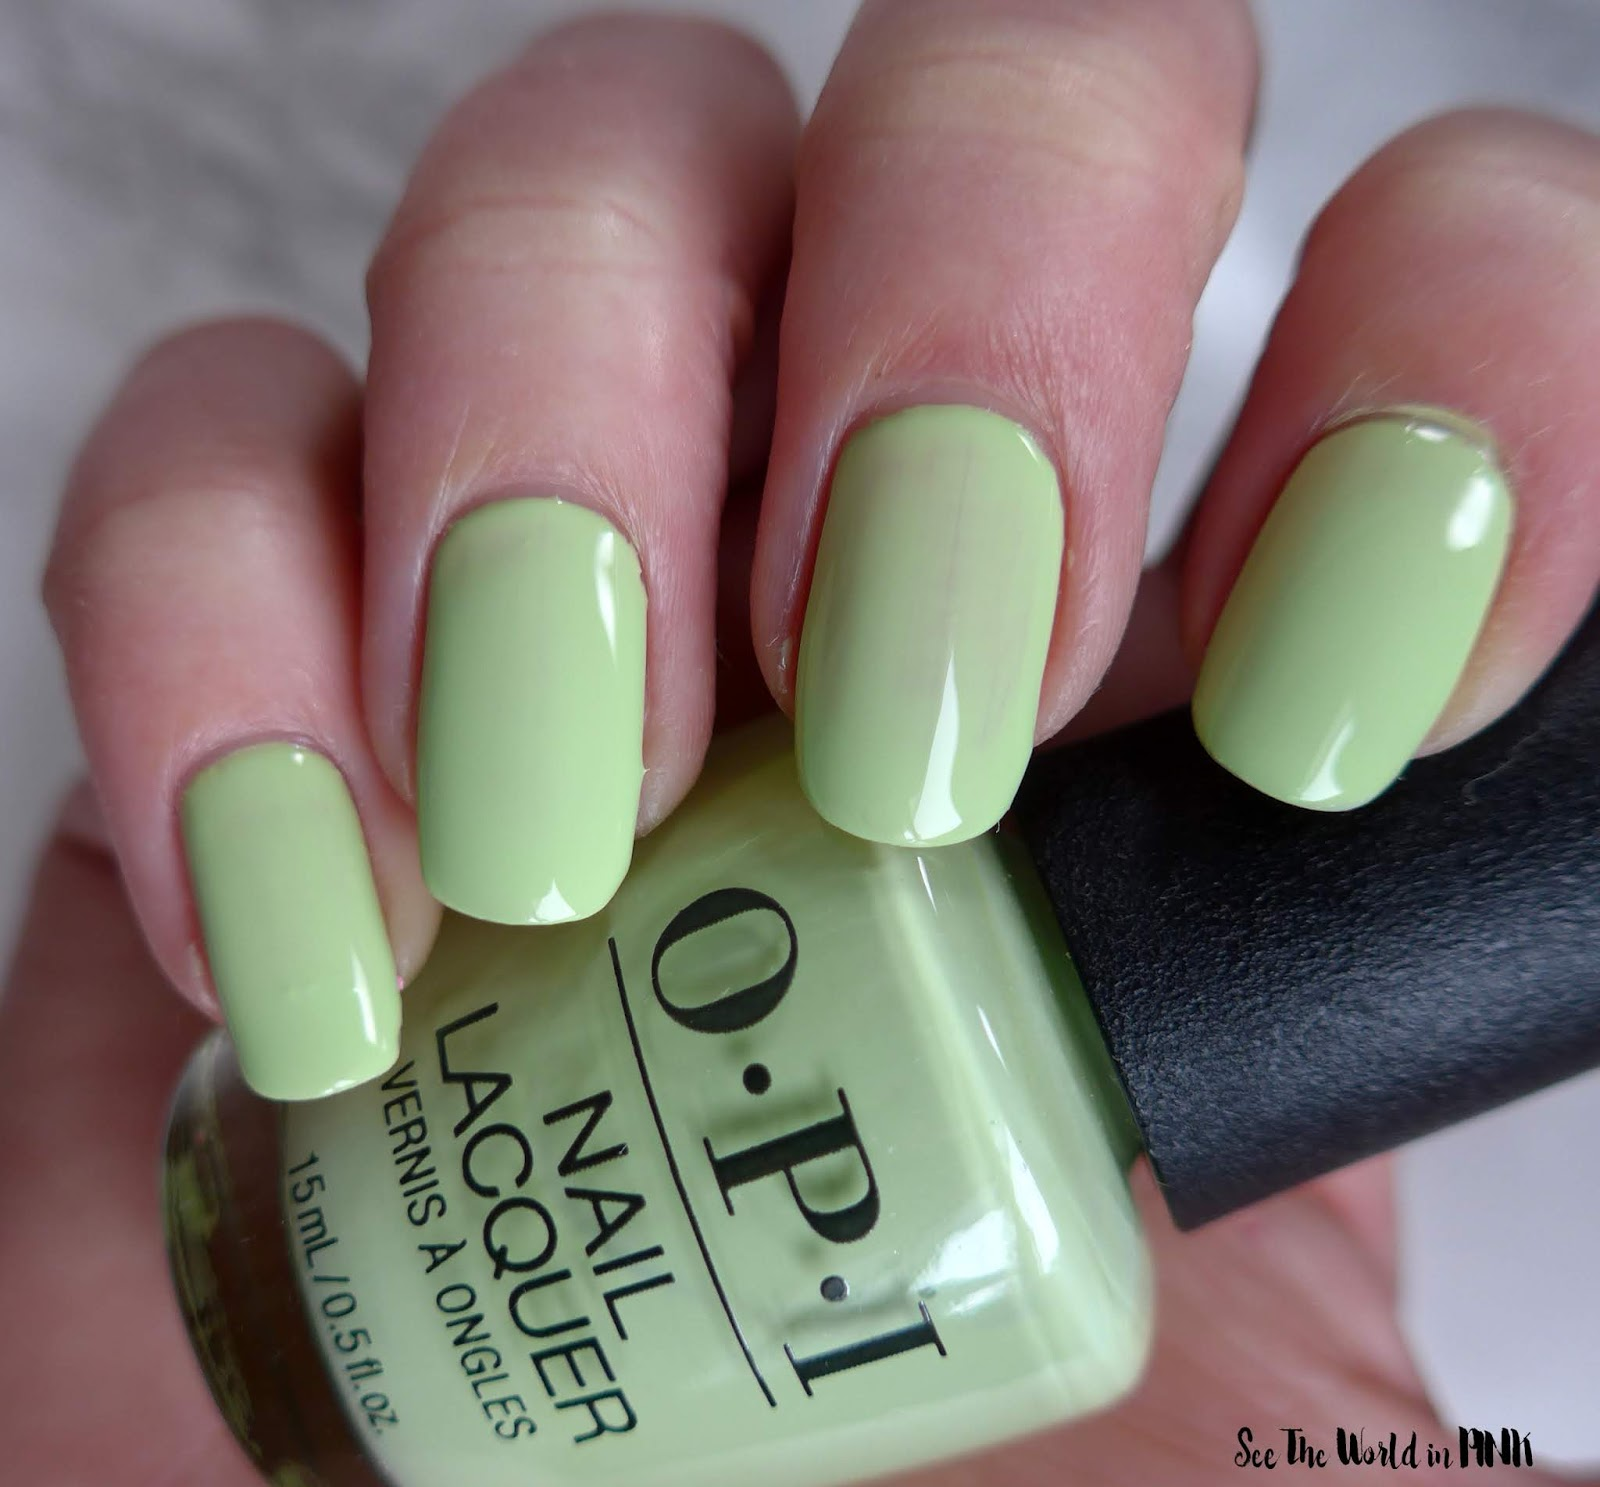 Manicure Monday - OPI Tokyo Collection for Spring and Summer 2019 How Does Your Zen Garden Grow?